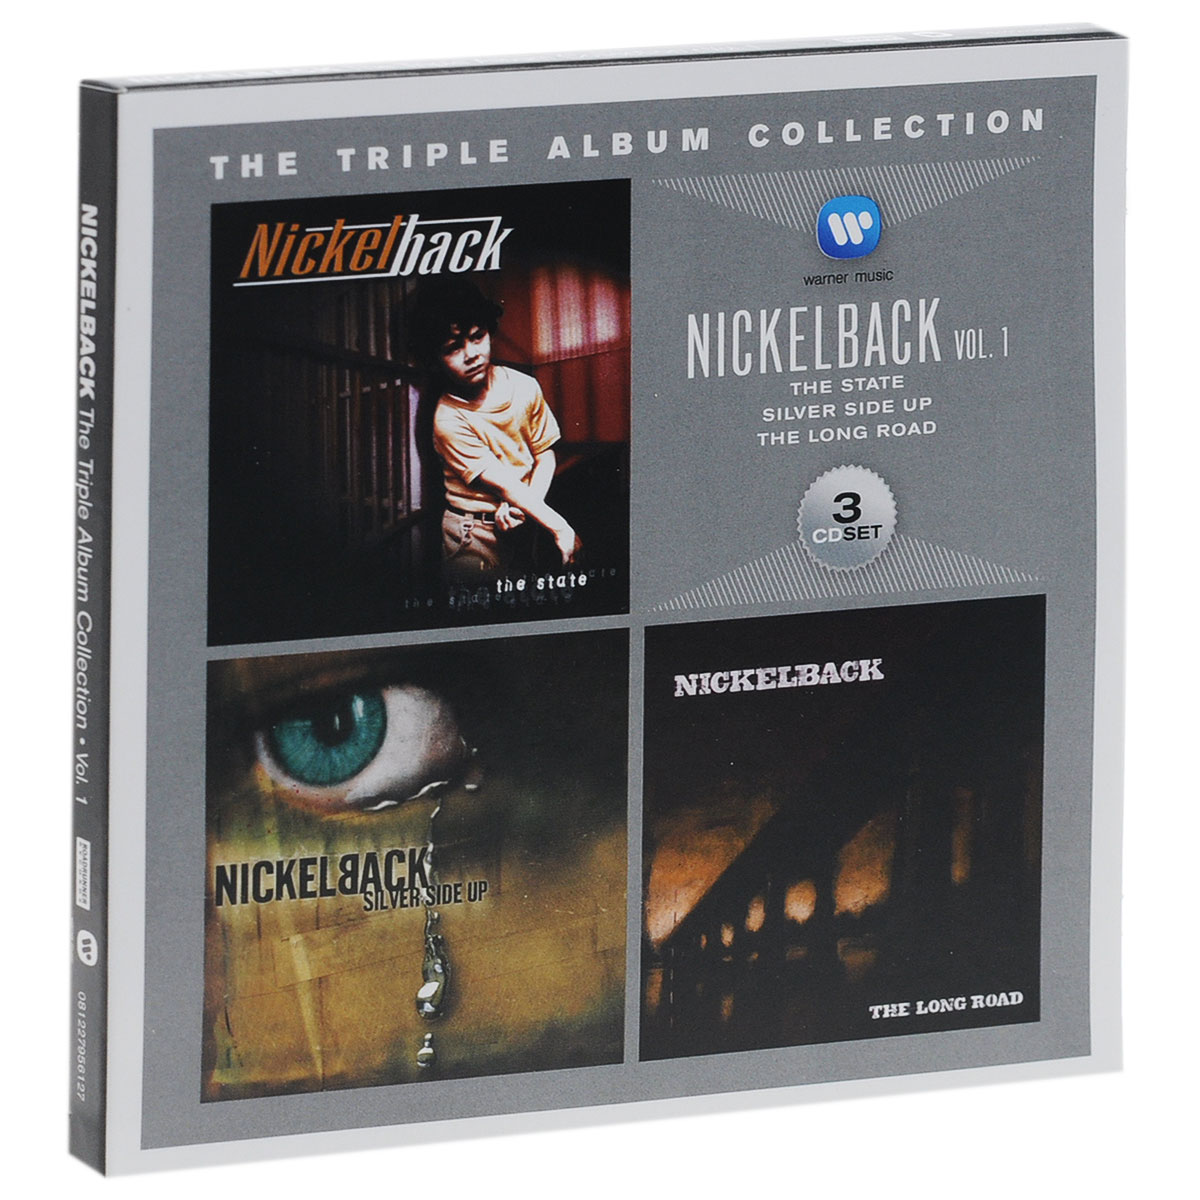 Nickelback Nickelback. The Triple Album Collection. Vol. 1 (3 CD) powers the definitive hardcover collection vol 7